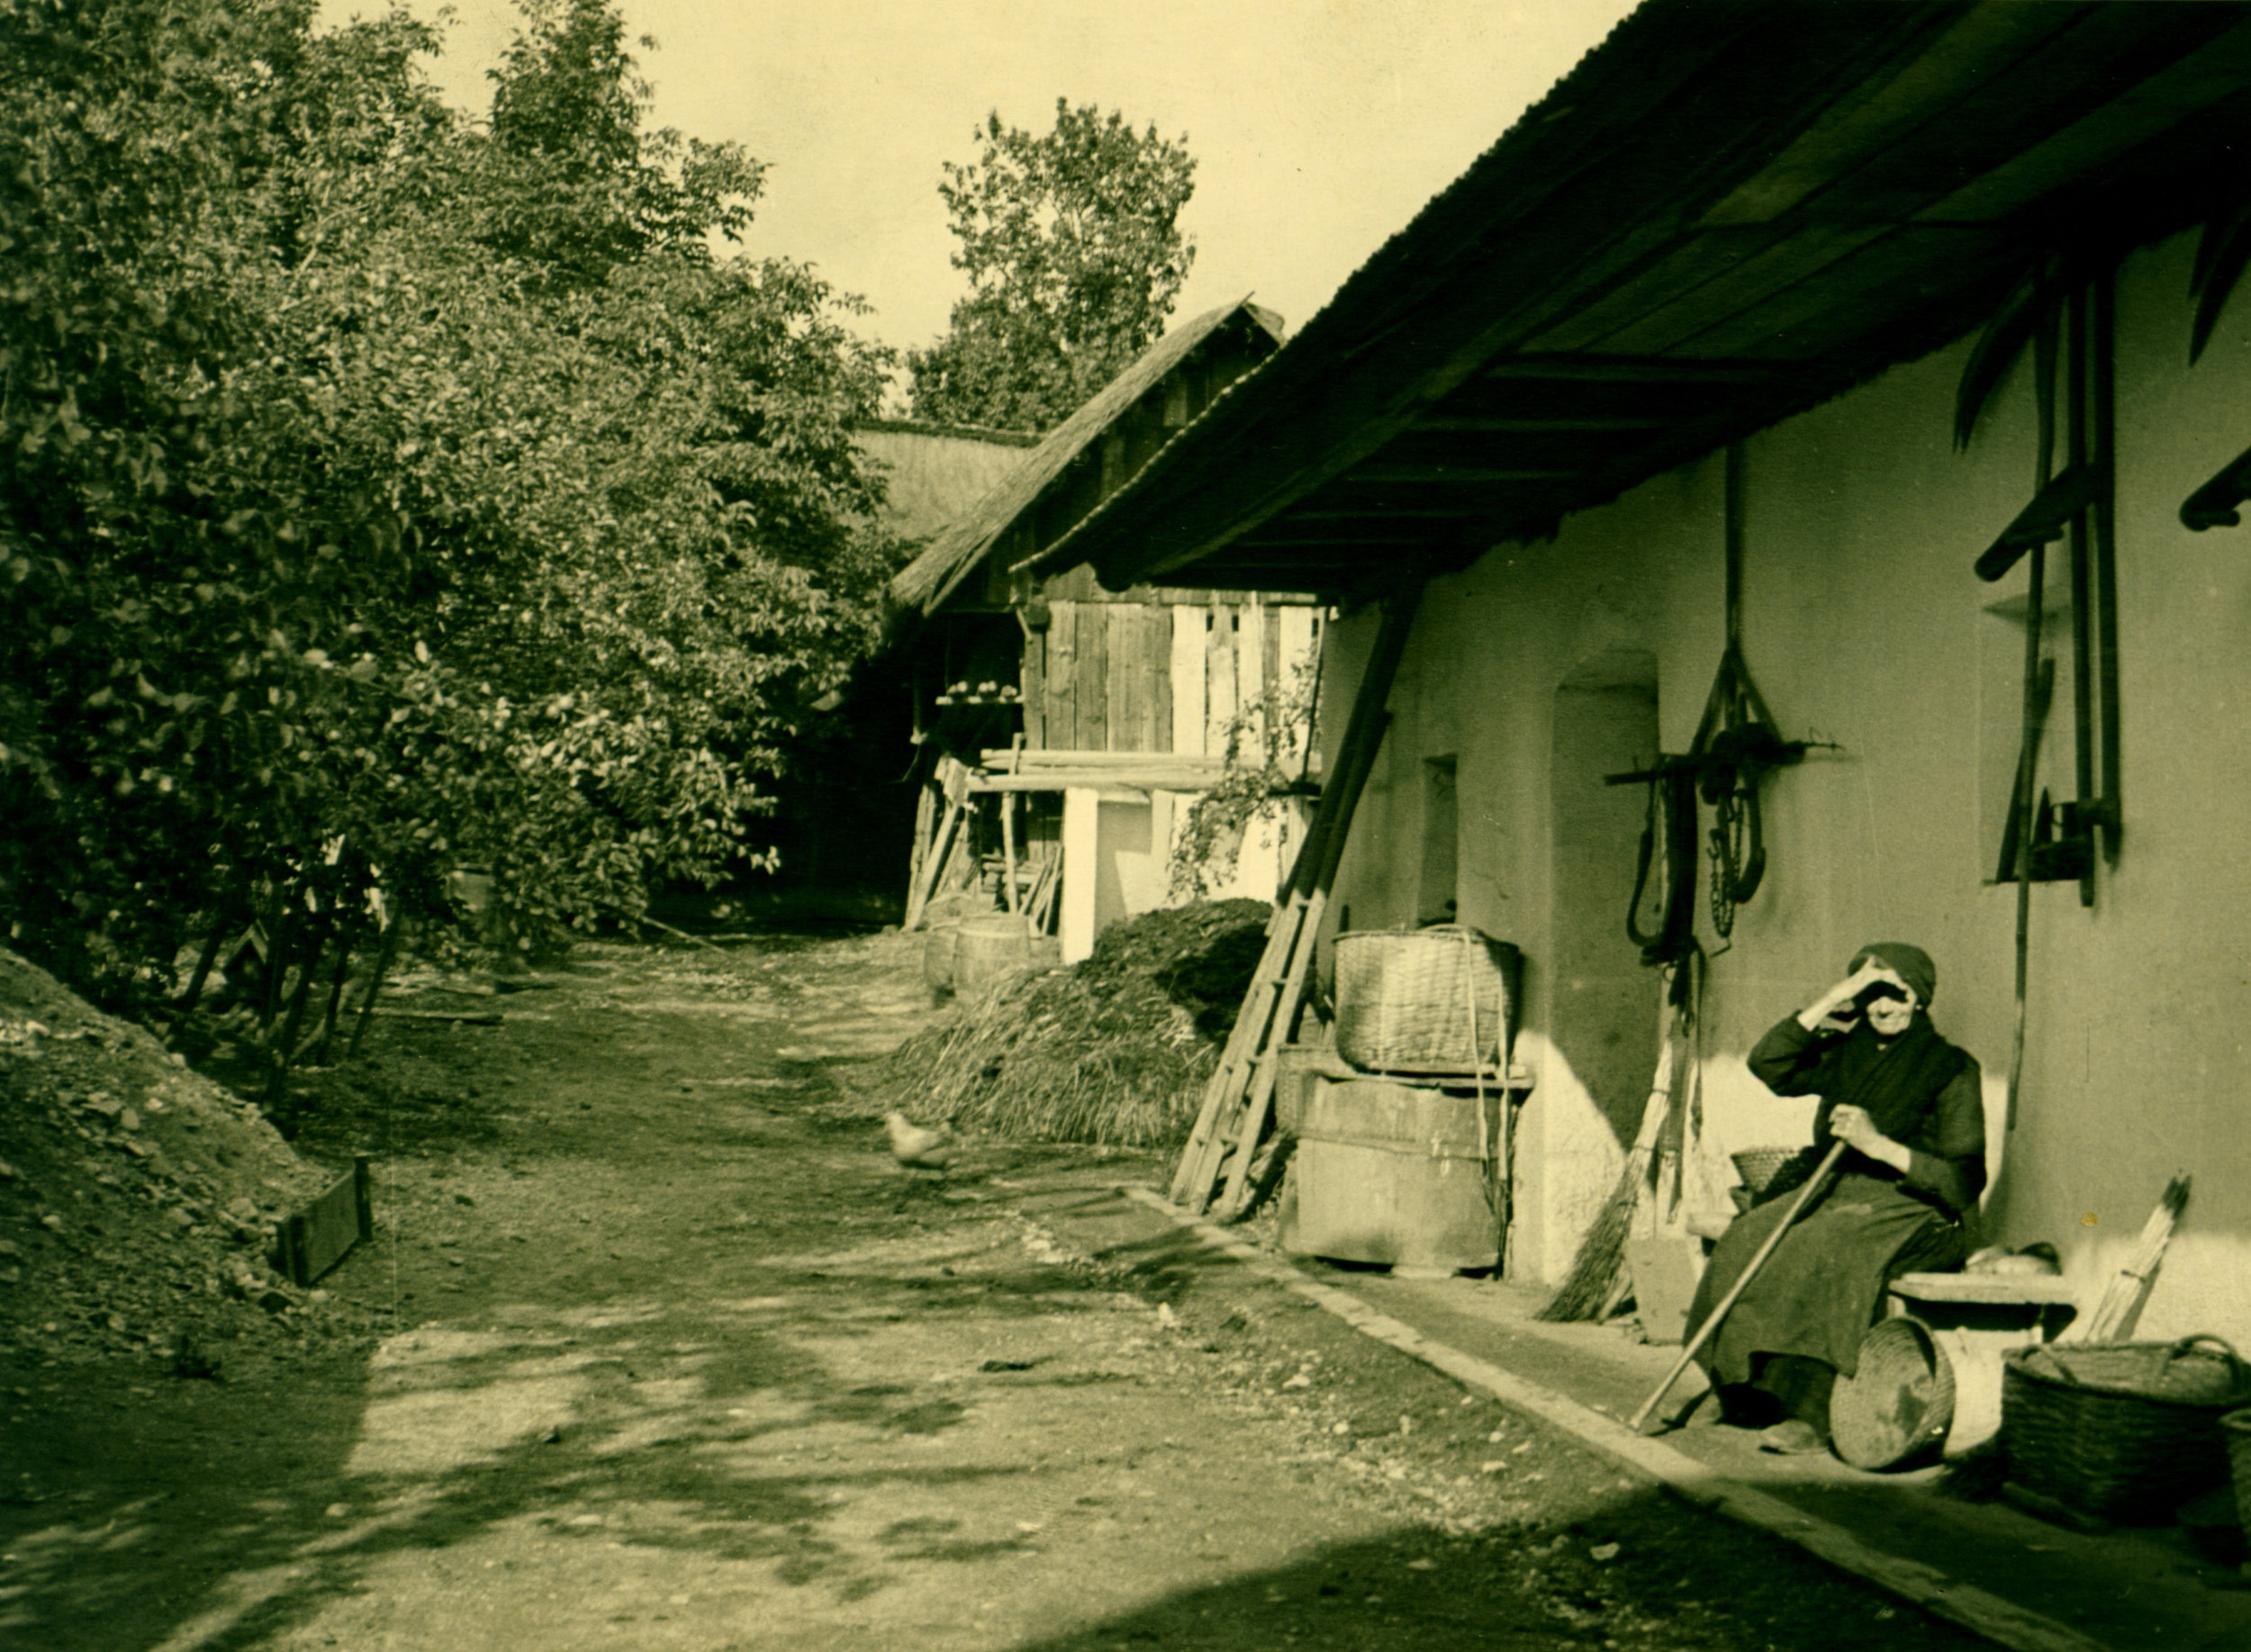 Theresia Piff, Gustav's maternal grandmother's house (Photo by Gustav Rehberger in 1937)